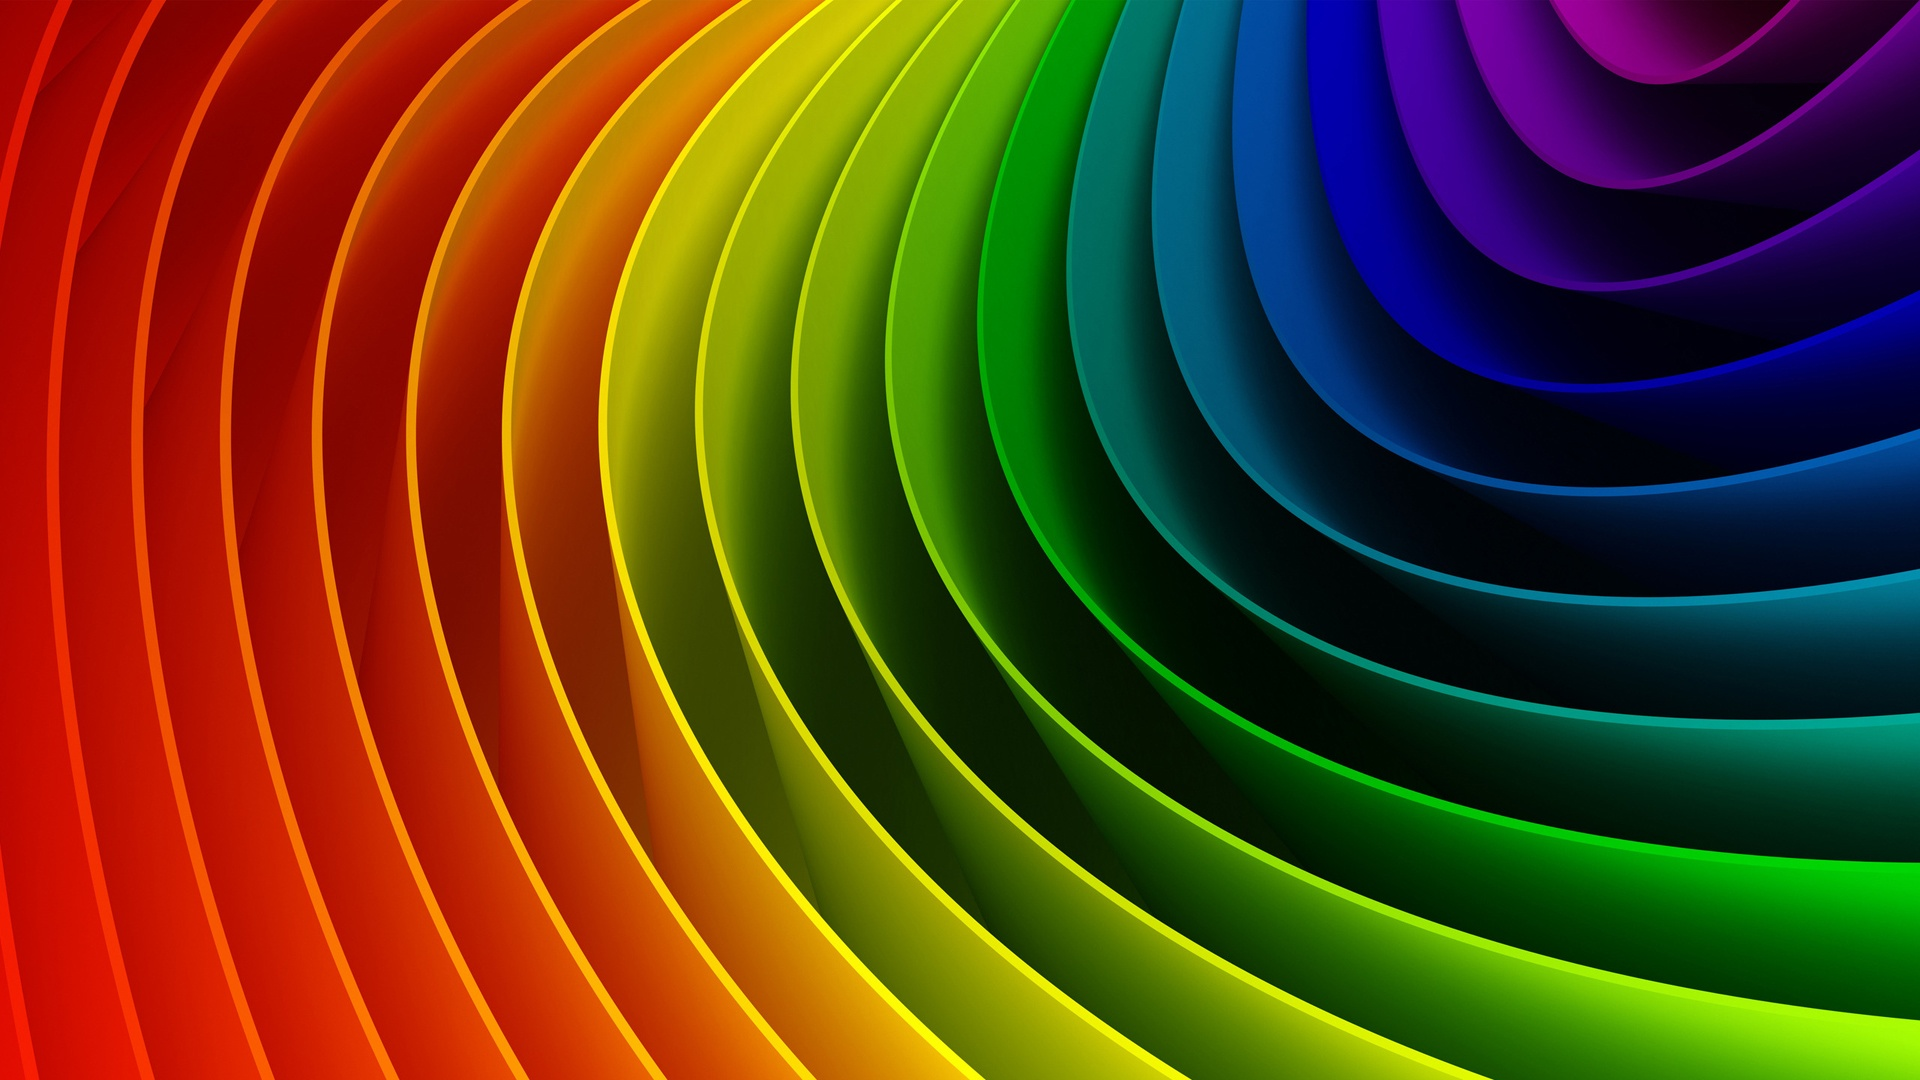 Cool Colorful Background - WallpaperSafari - photo#20